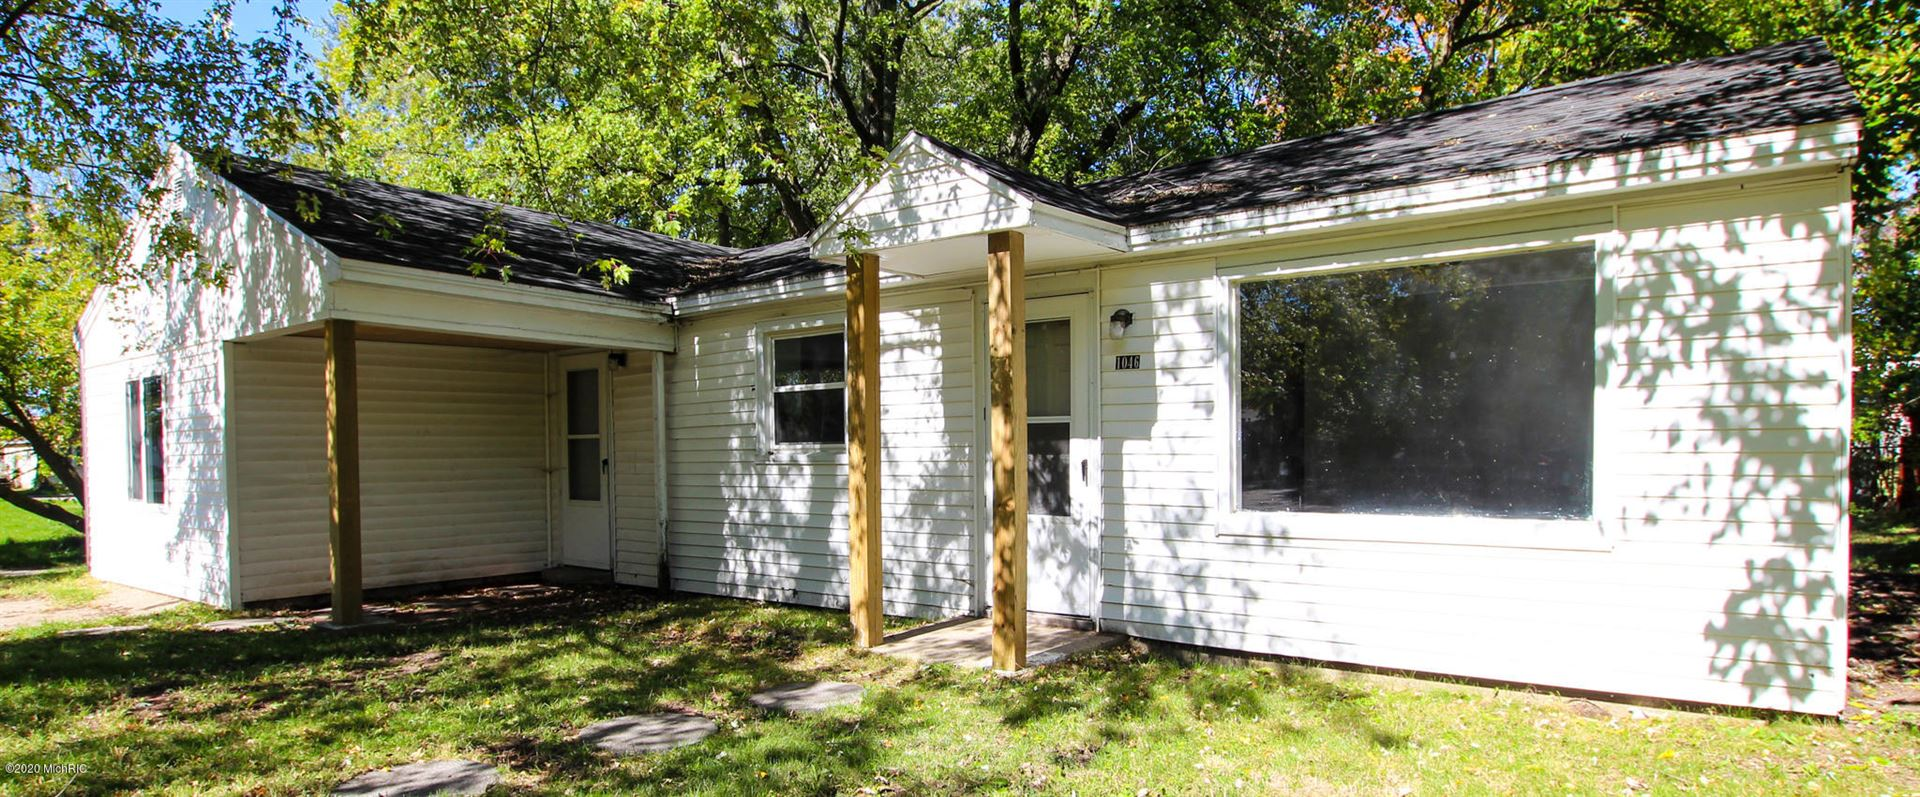 1046 Windsor Avenue, Muskegon, MI 49441 - MLS#: 21005632